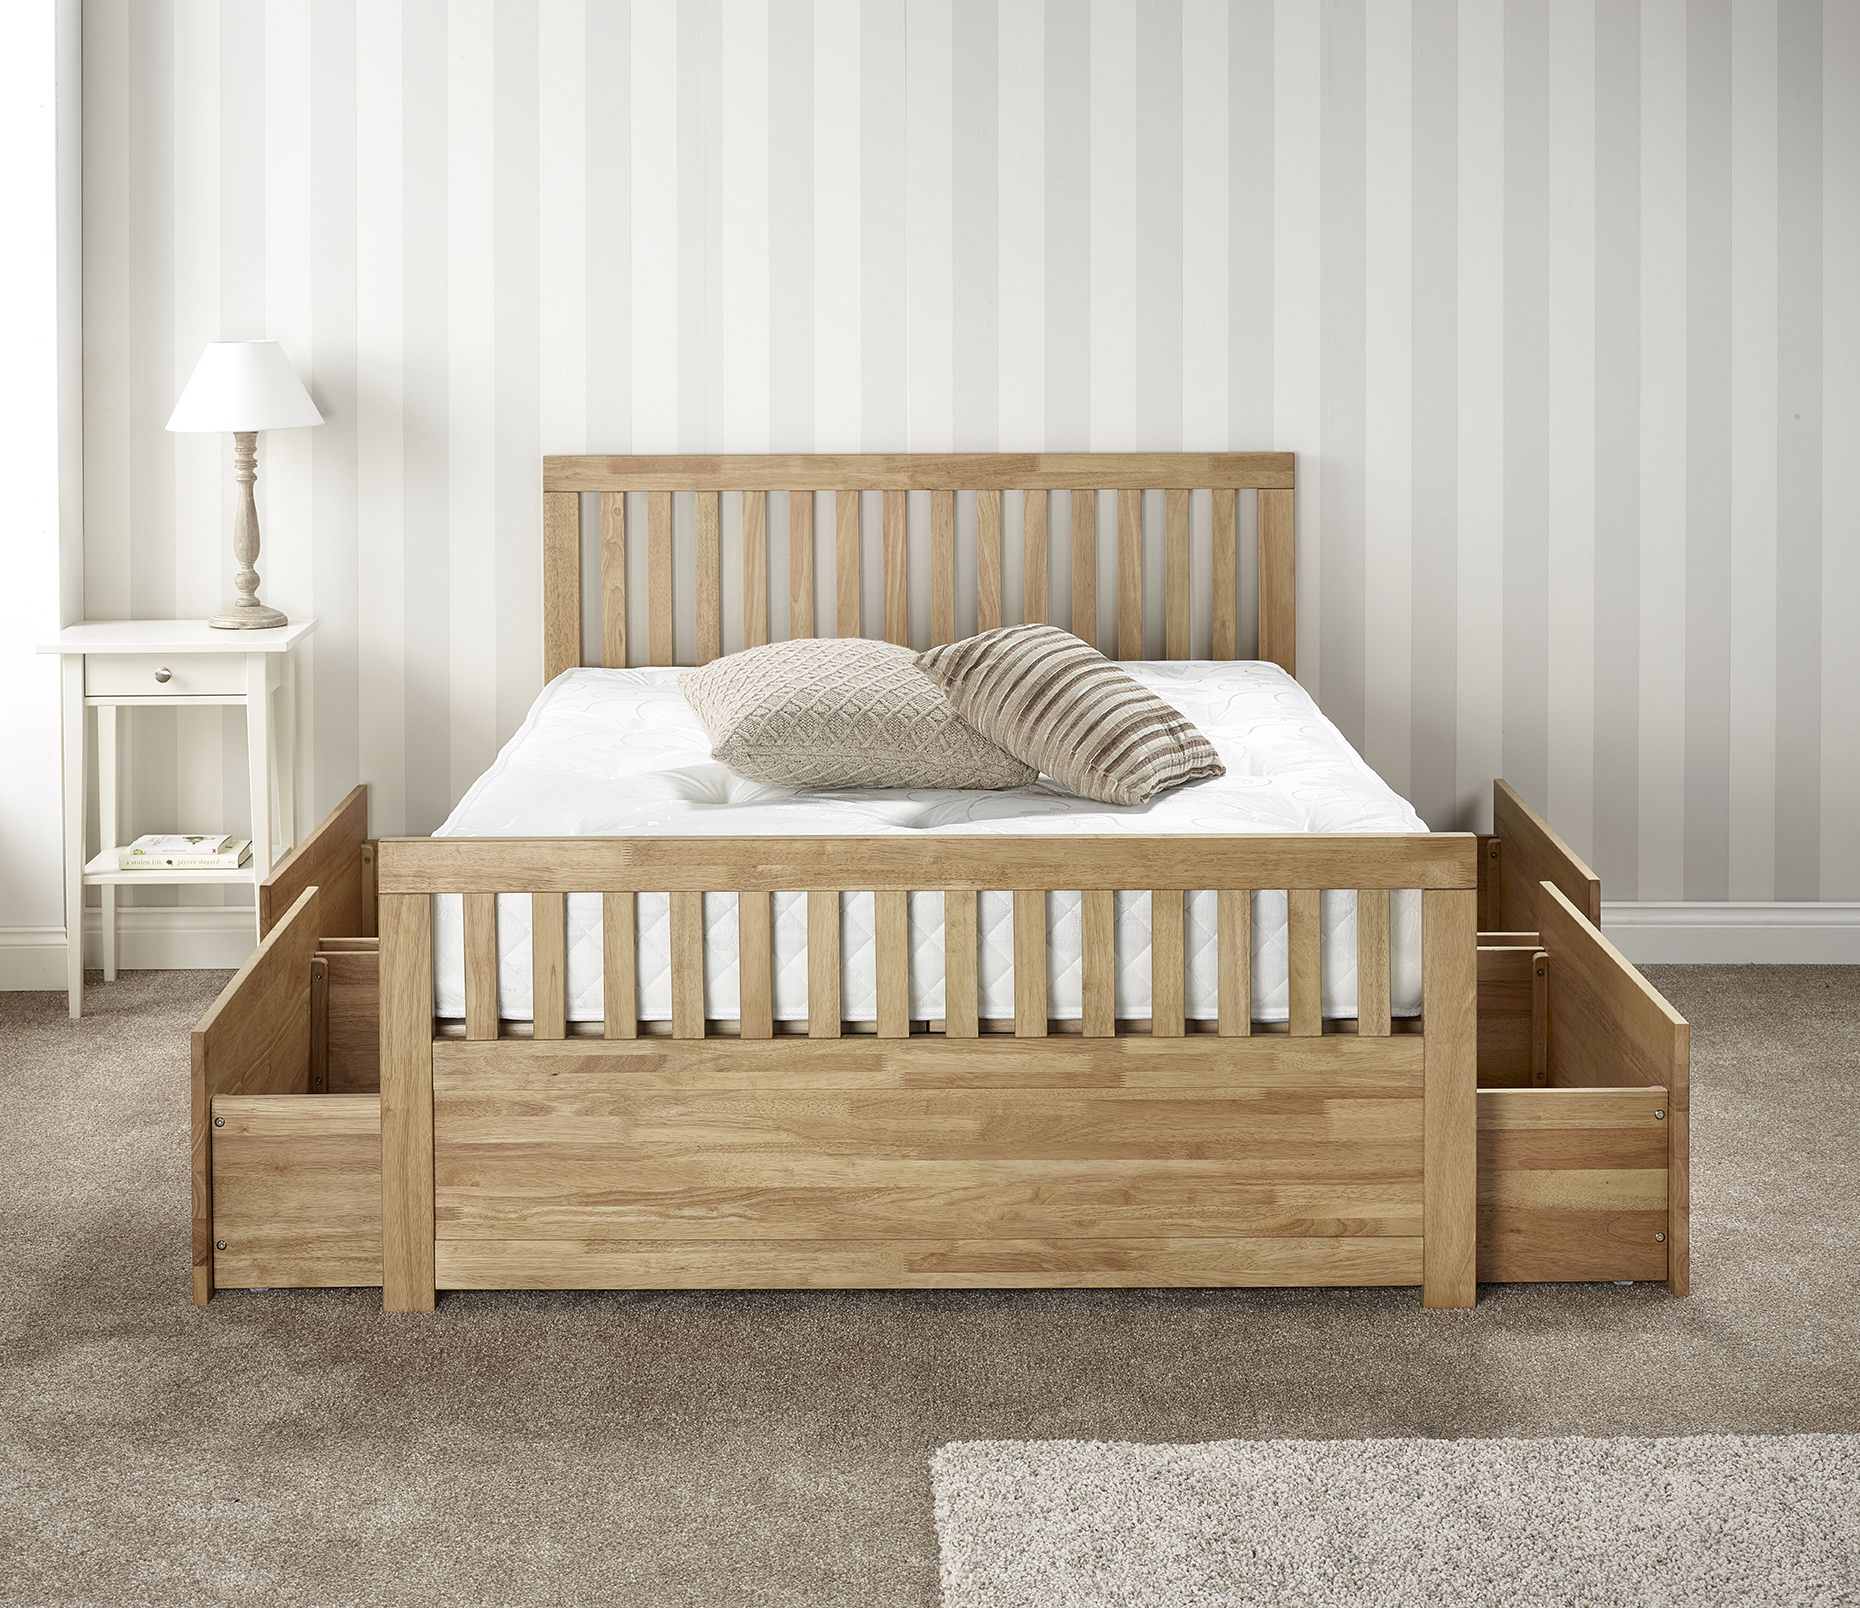 The Italian Furniture Company Leeds Ltd Importers And. Wooden Bed With Storage  Drawers